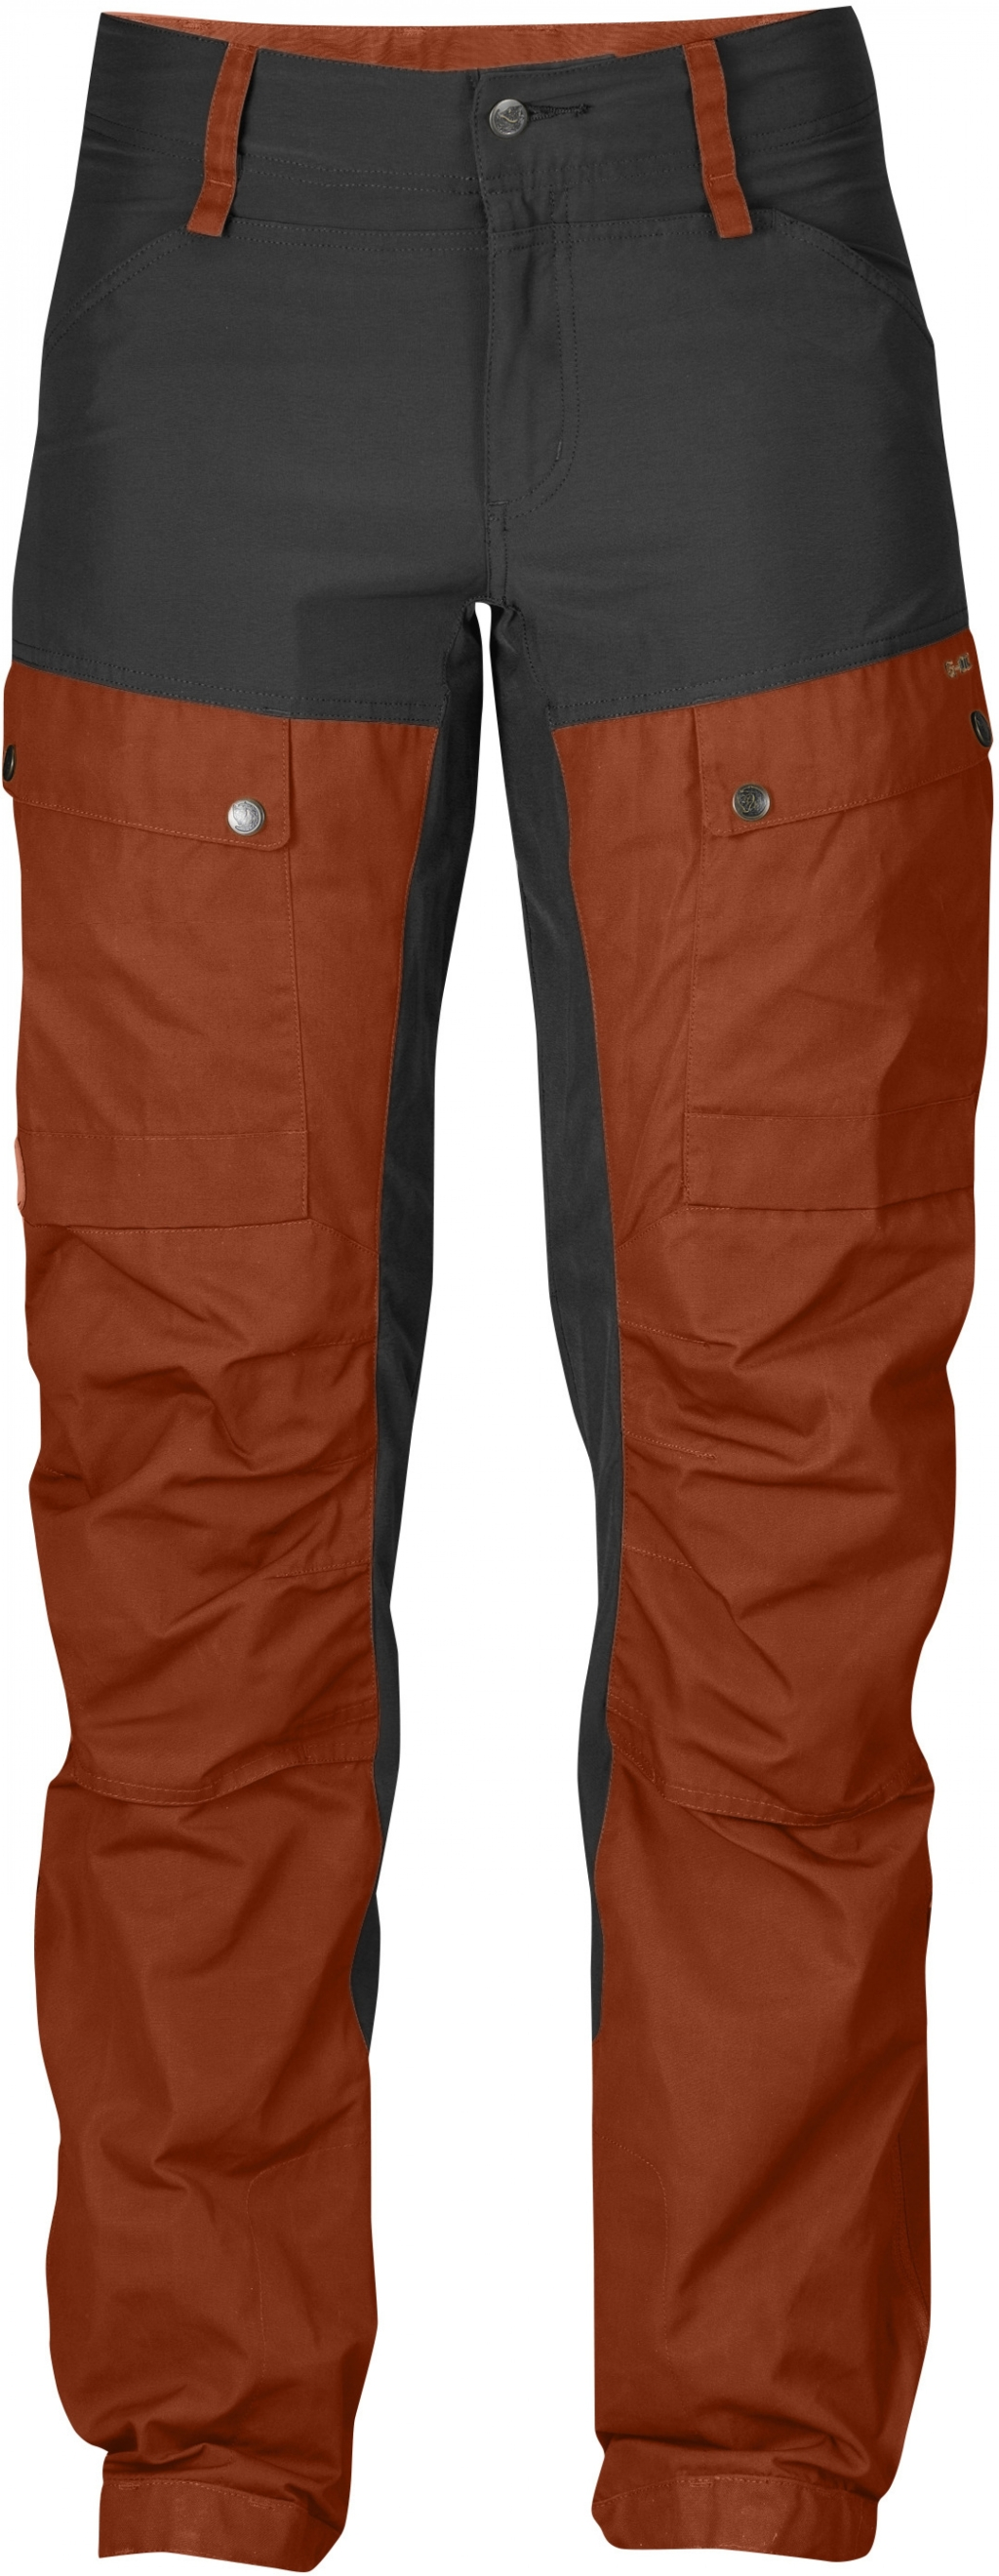 FjallRaven Keb Trousers W Regular Autumn Leaf-30